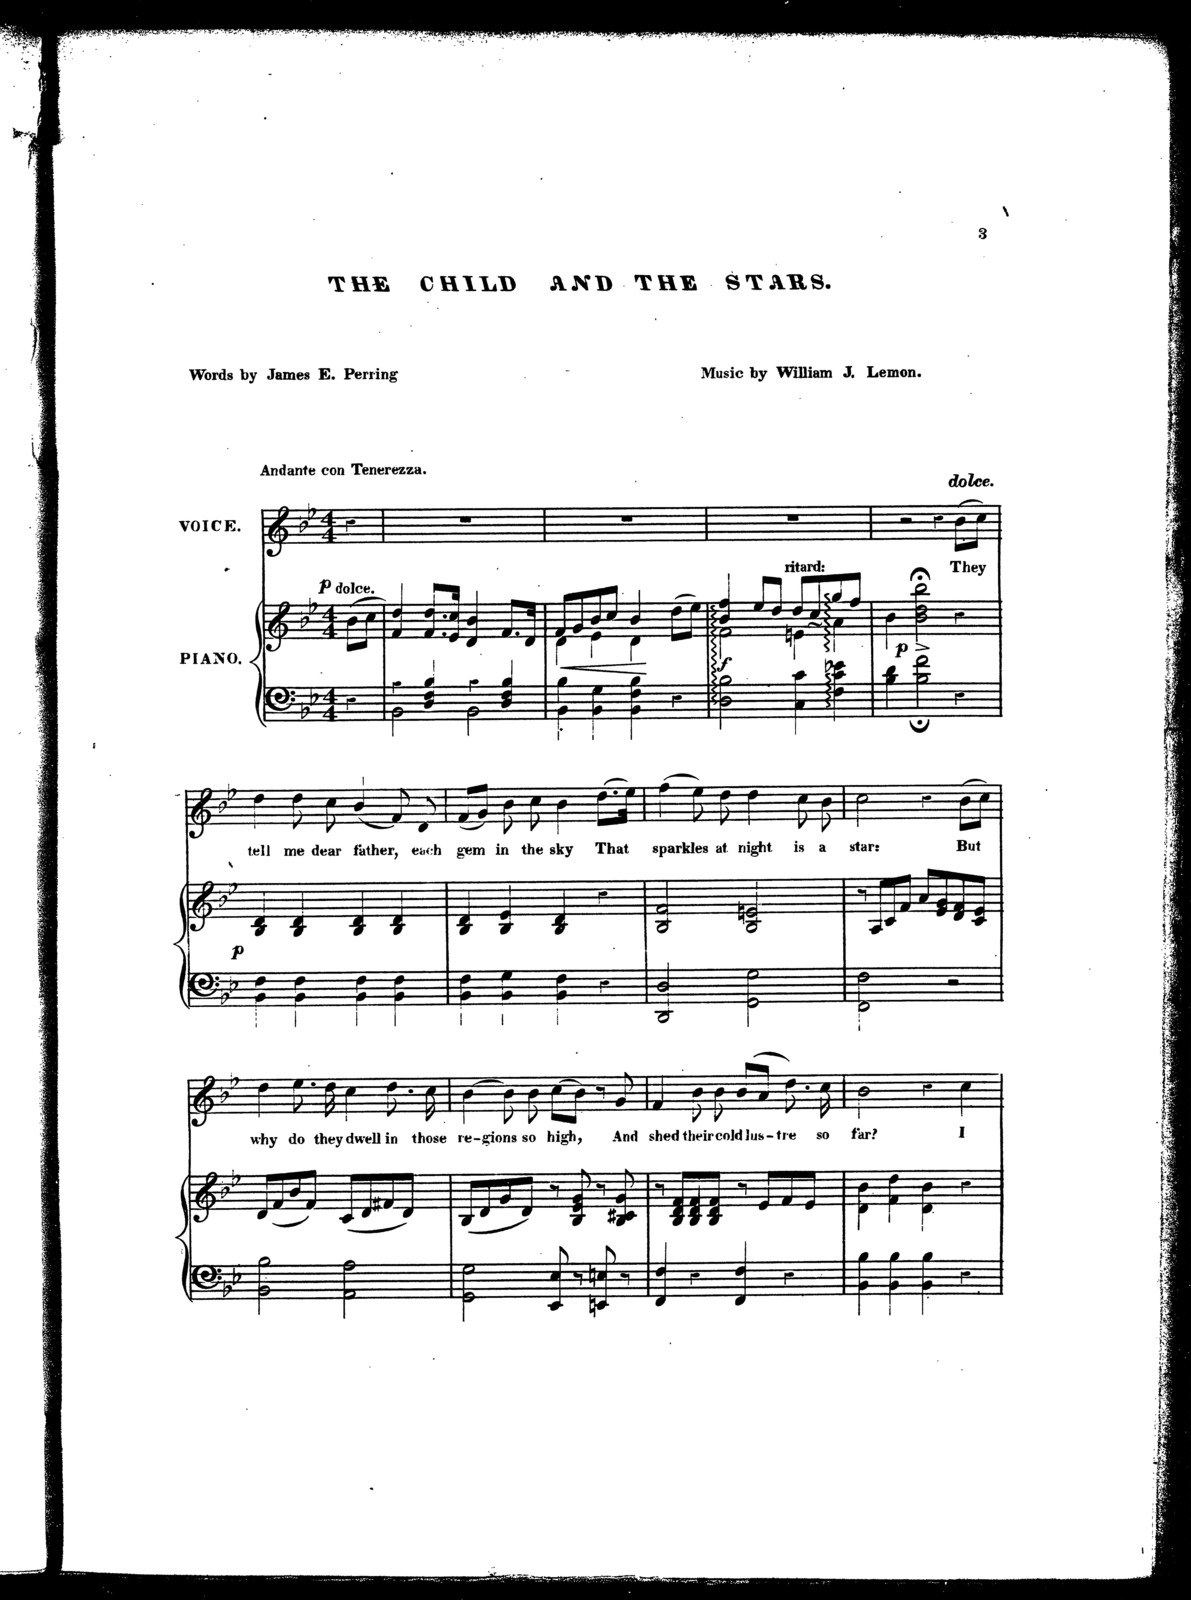 The  child and the stars, ballad